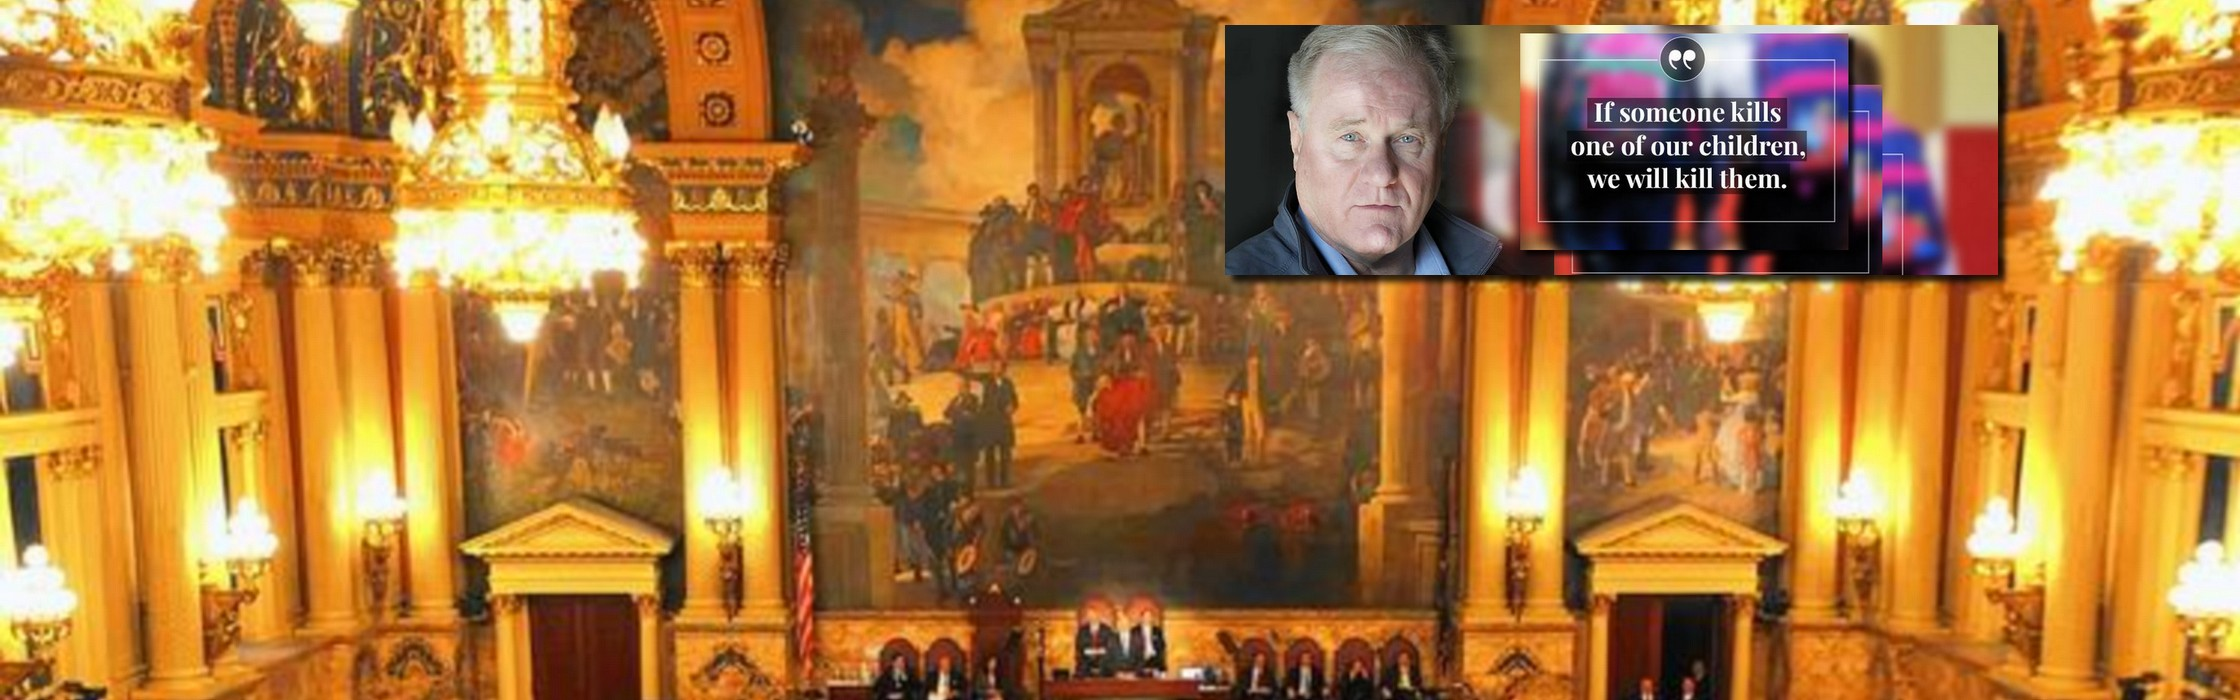 Scott Wagner Calls for Mandatory Death Penalty for School Shooters